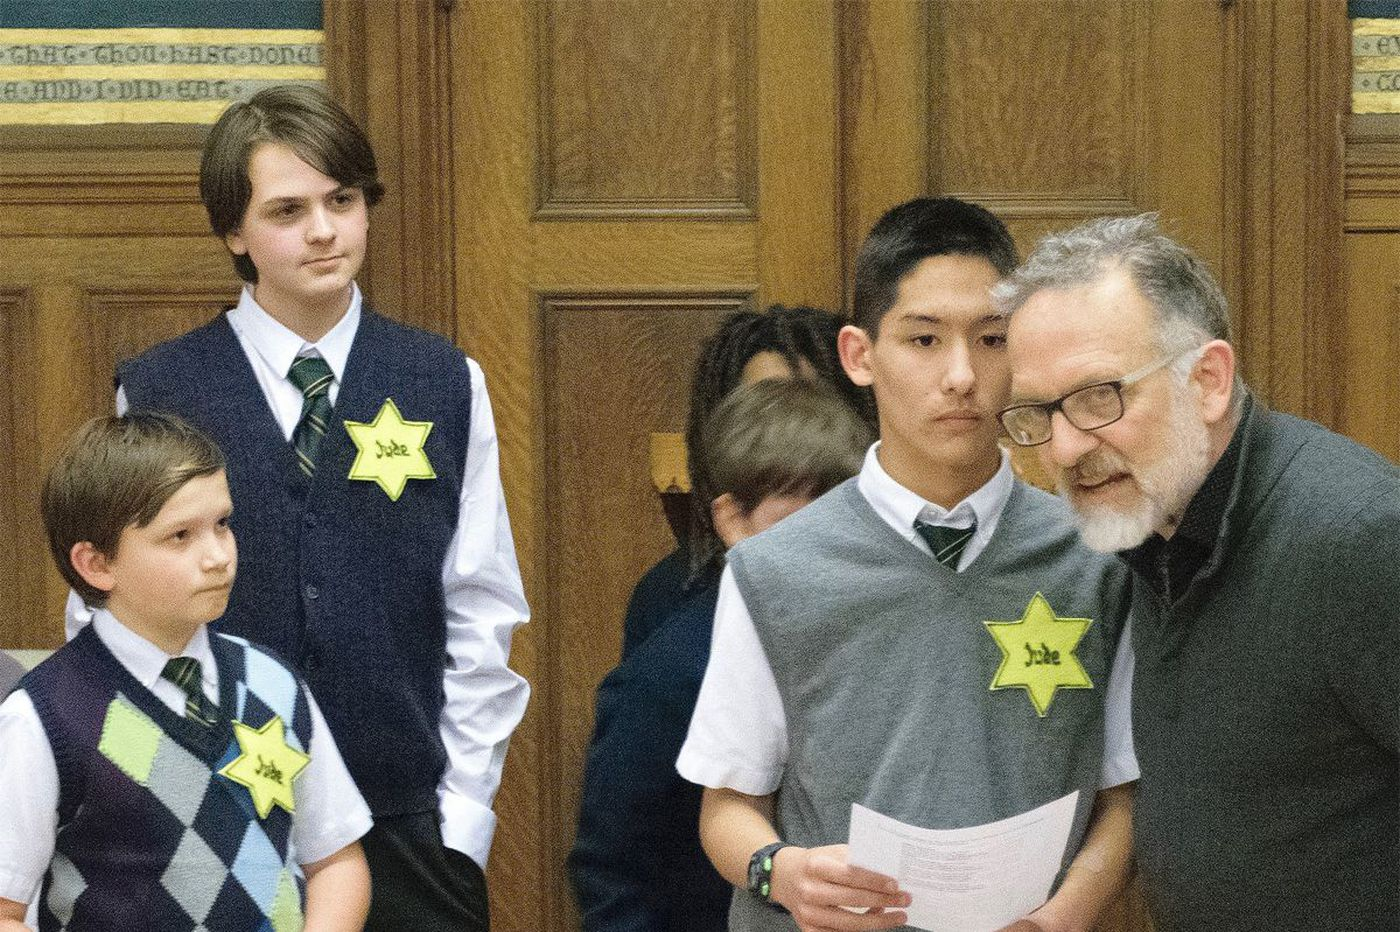 Boychoir honors Holocaust survivor, veterans agency preps a new home, CEO tends bar for a cause, and singers compete in Recovery Idol